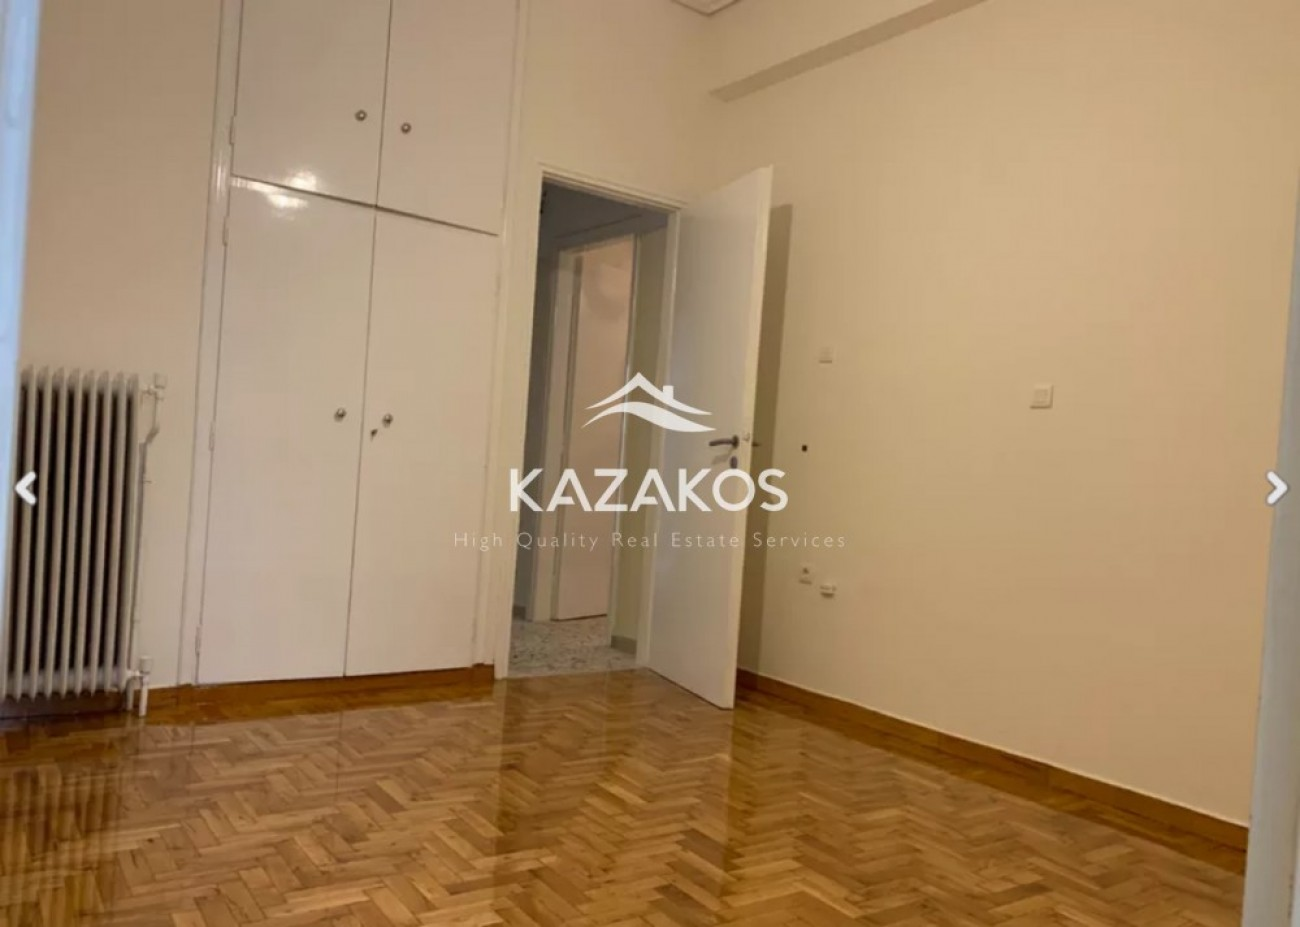 Apartment for Sale in Nea Kipseli, Athens City Center, Greece